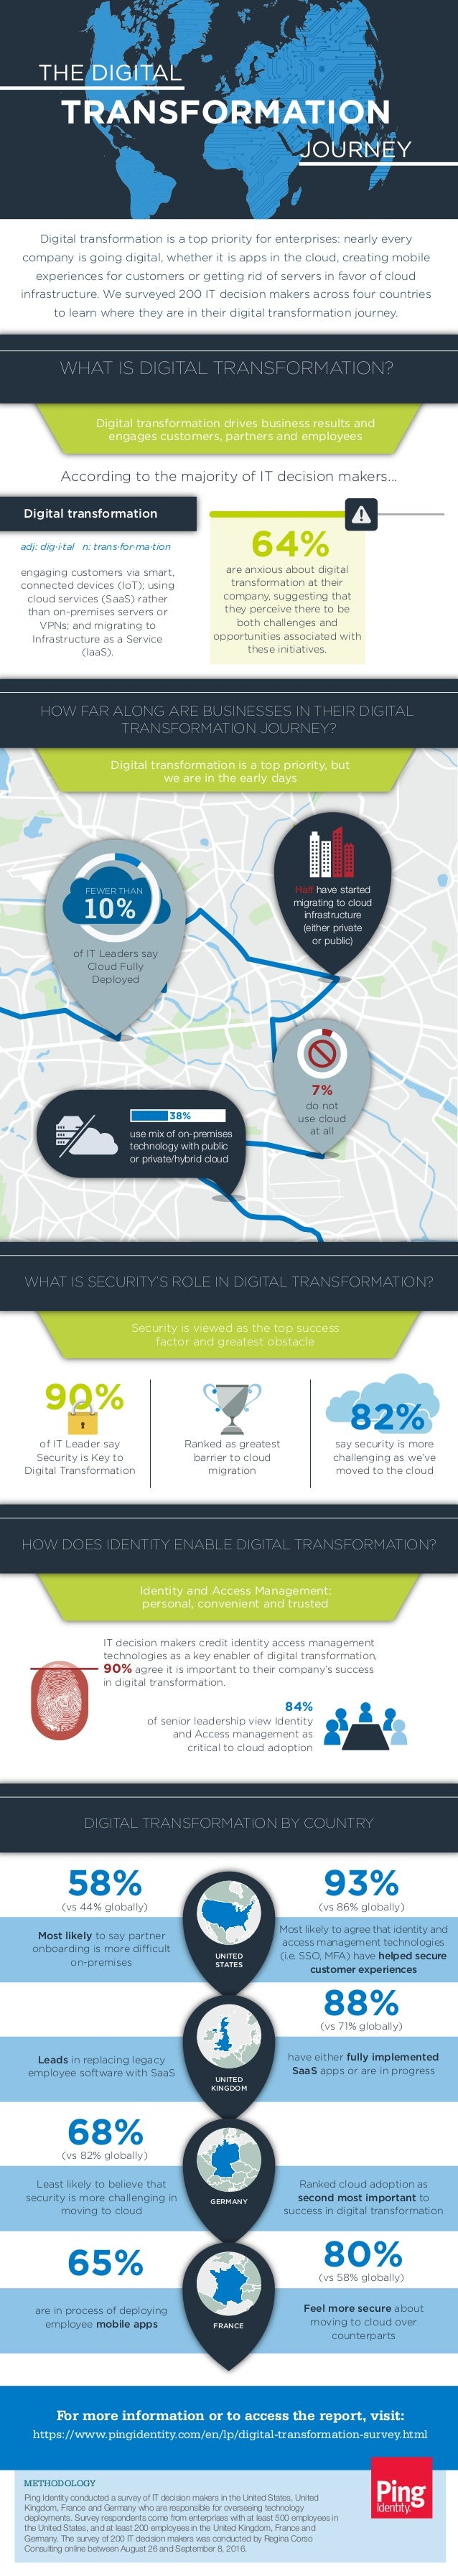 Digital transformation drives business results and engages customers, partners and employees Ping Identity conducted a sur...